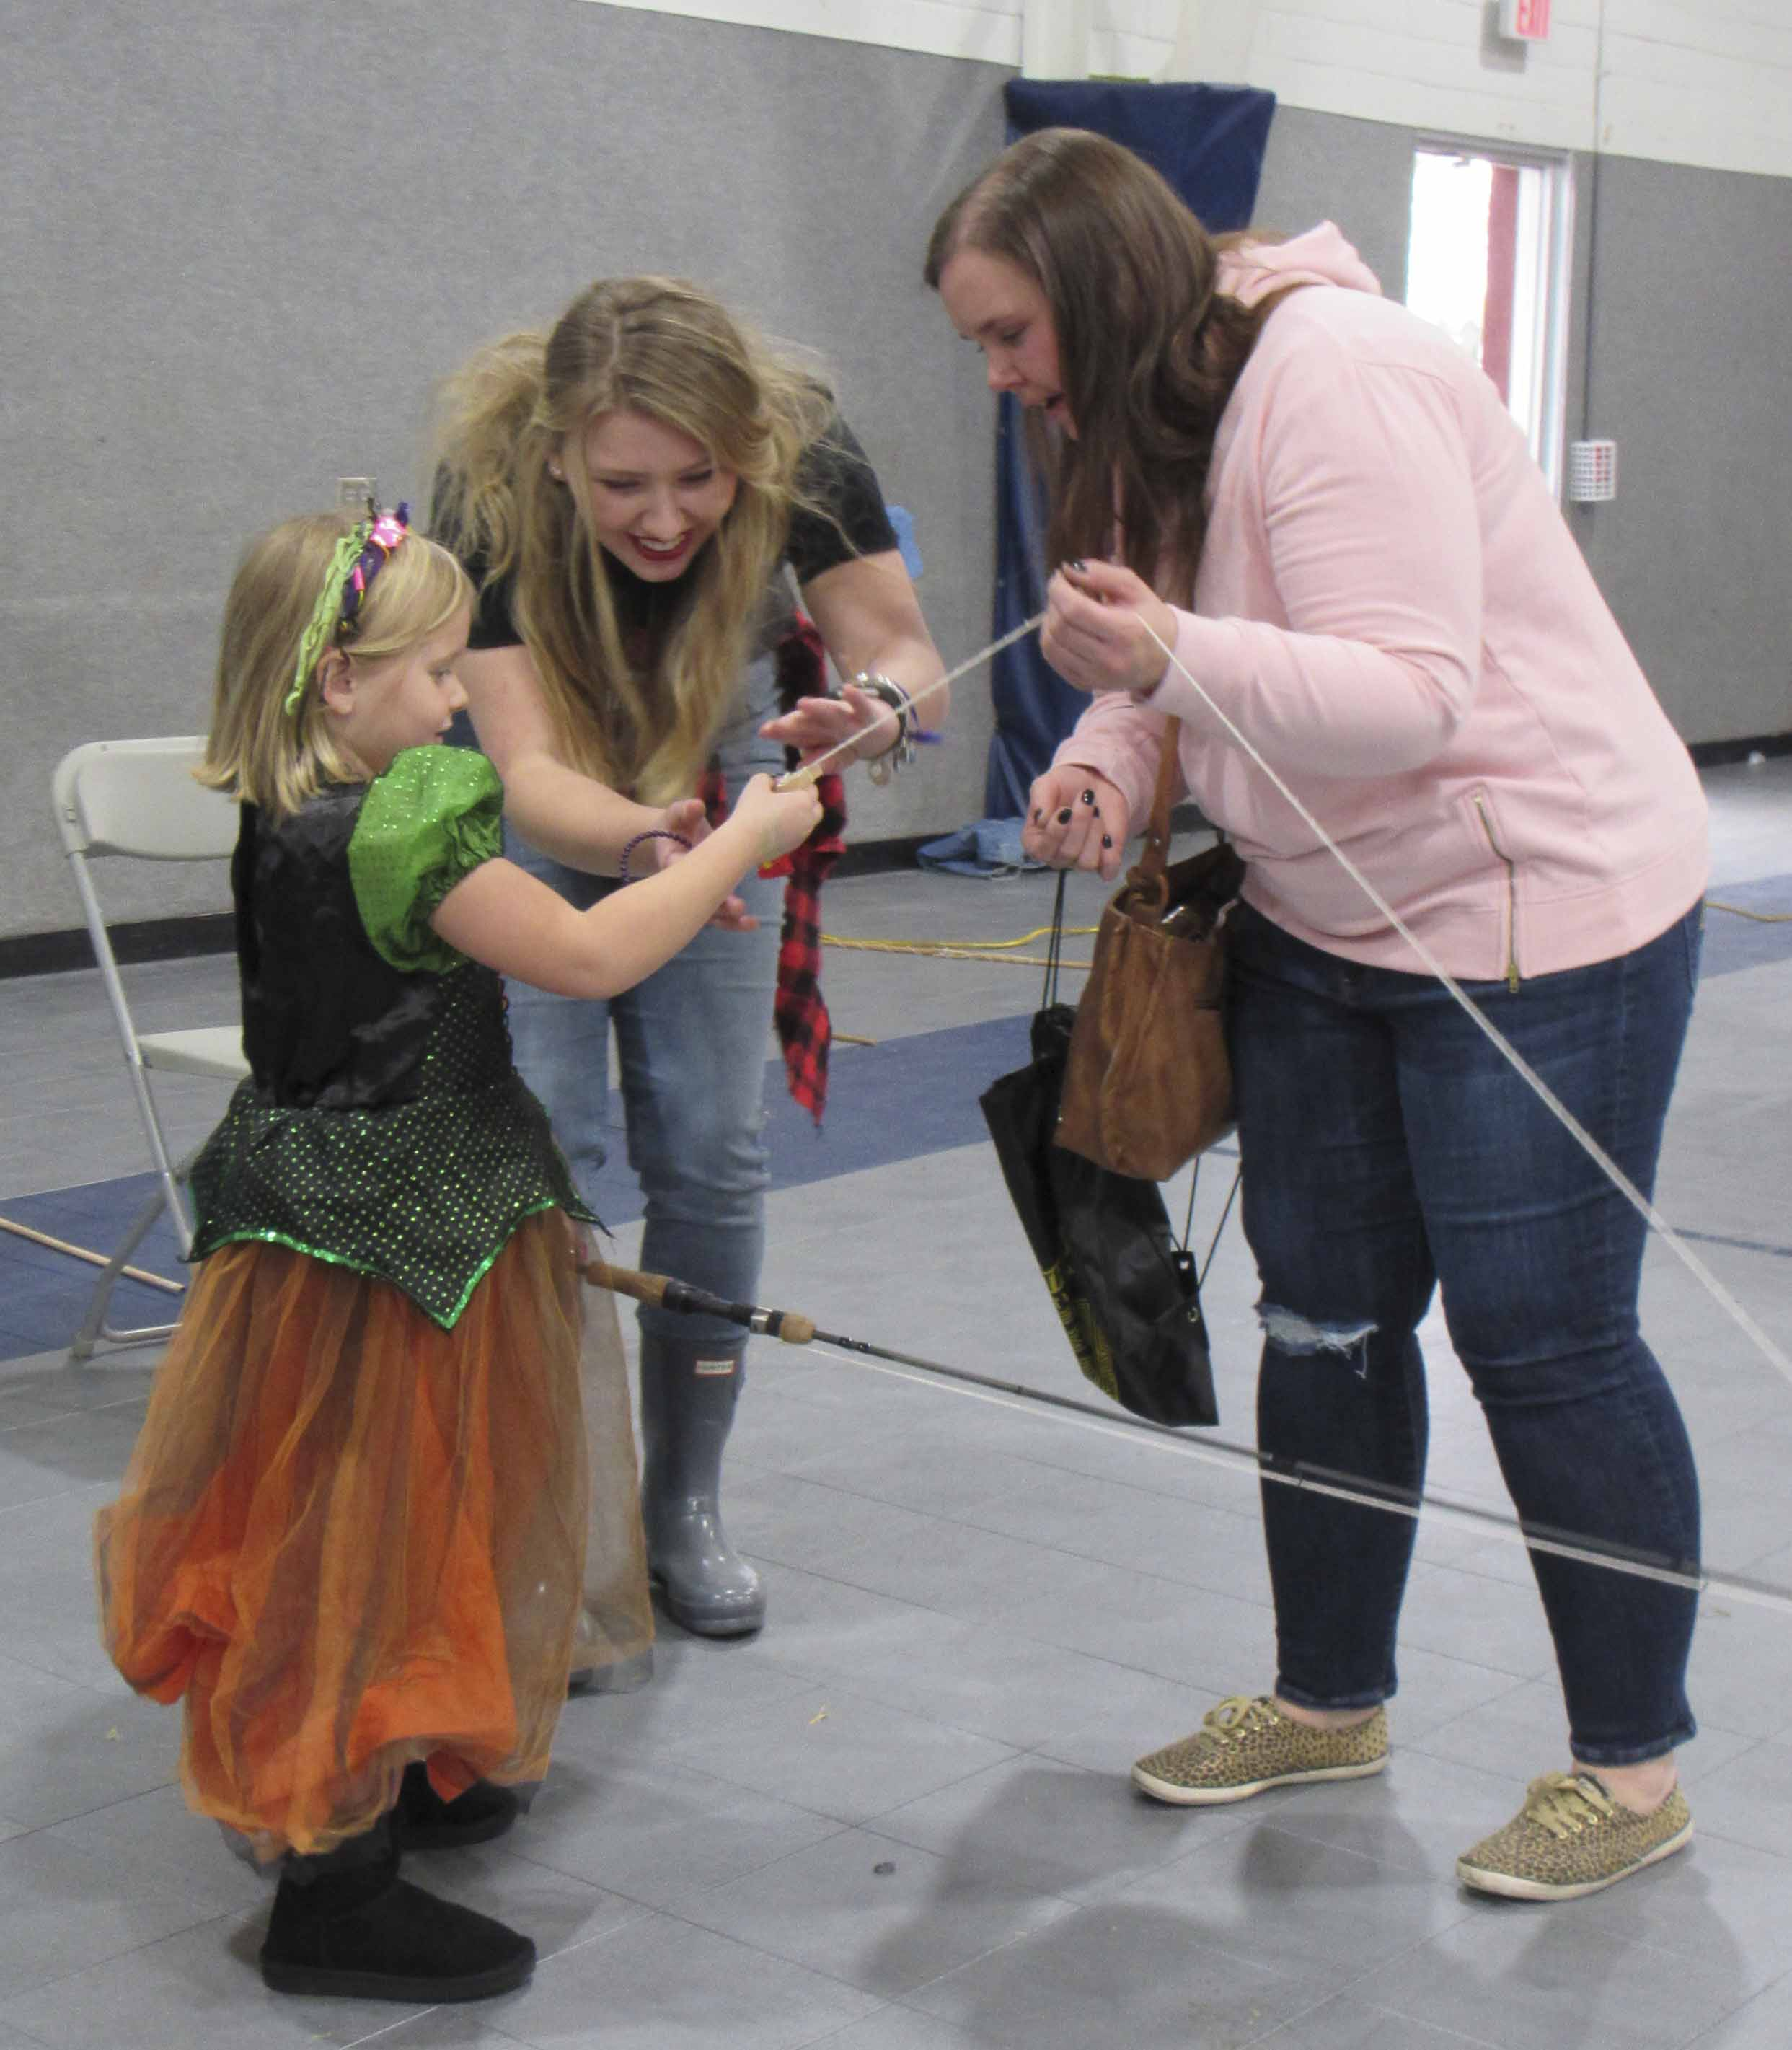 Scarlett McDermott looks for her prize at the end of the fishing pole. Assisting at the fishing pond at Austin's Halloween Fun Day to Scare Away Childhood Cancer was Elle Boeding. Also pictured is Scarlett's mom, Kellie McDermott.